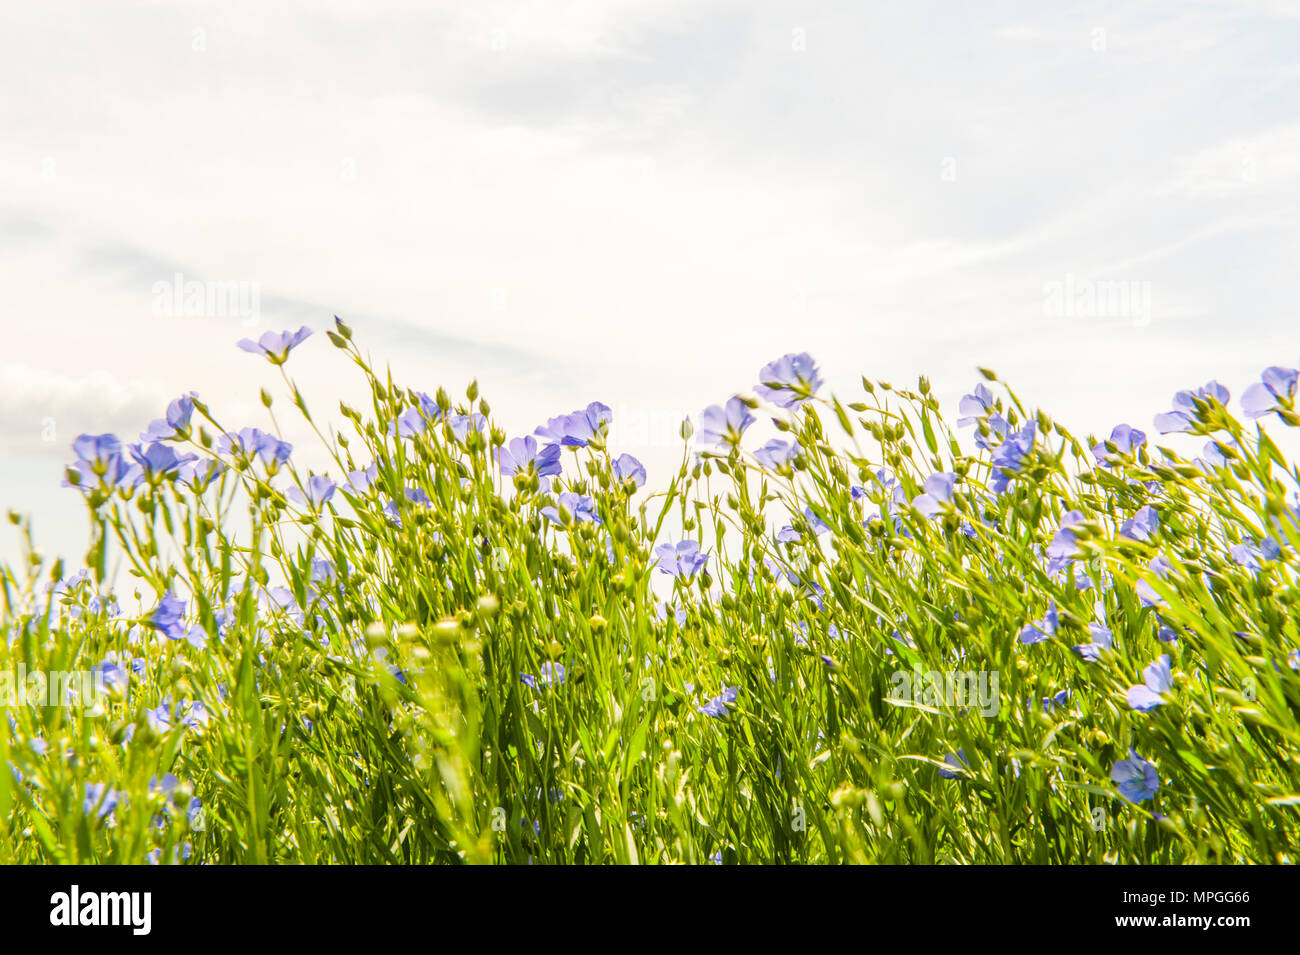 Flax in blossom on the Île d'Oléron, France - Stock Image